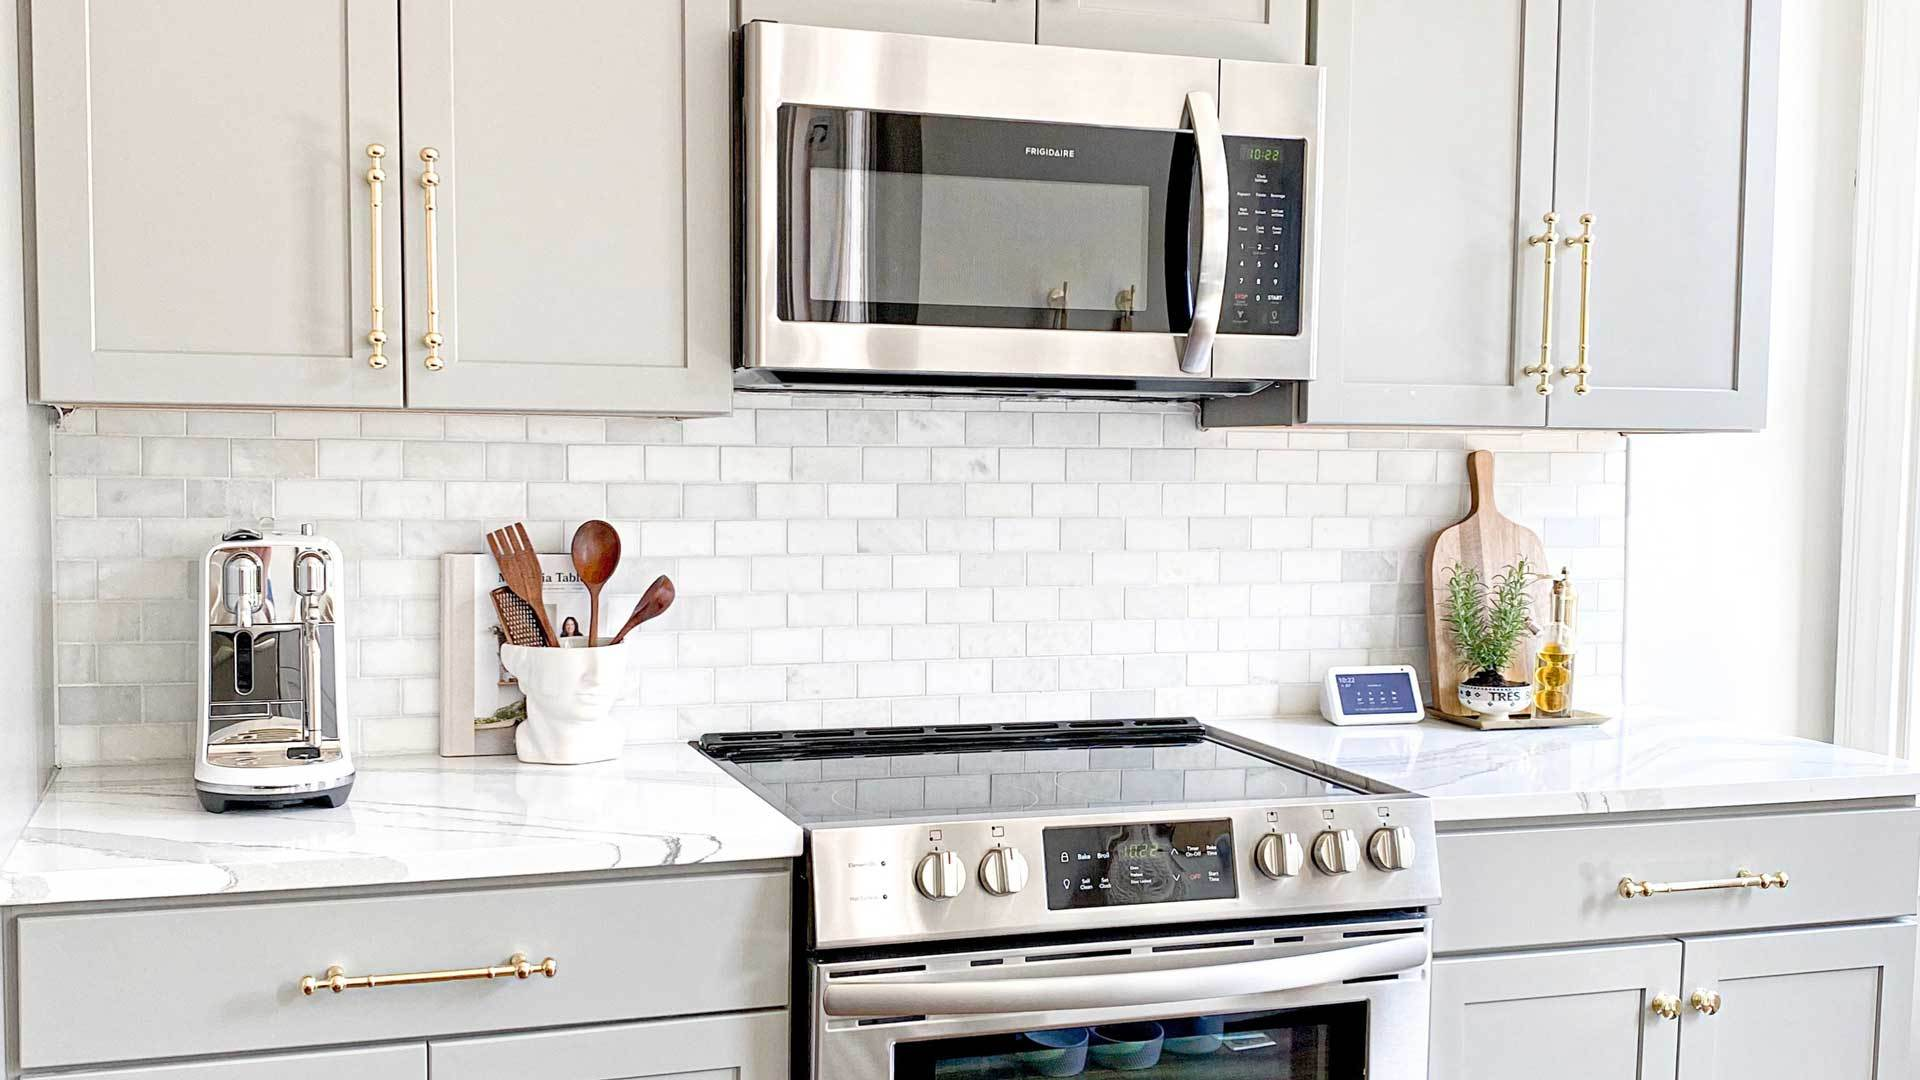 Cooktop-vs.-Wall-Oven-Things-to-Consider-While-Choosing-on-99insight